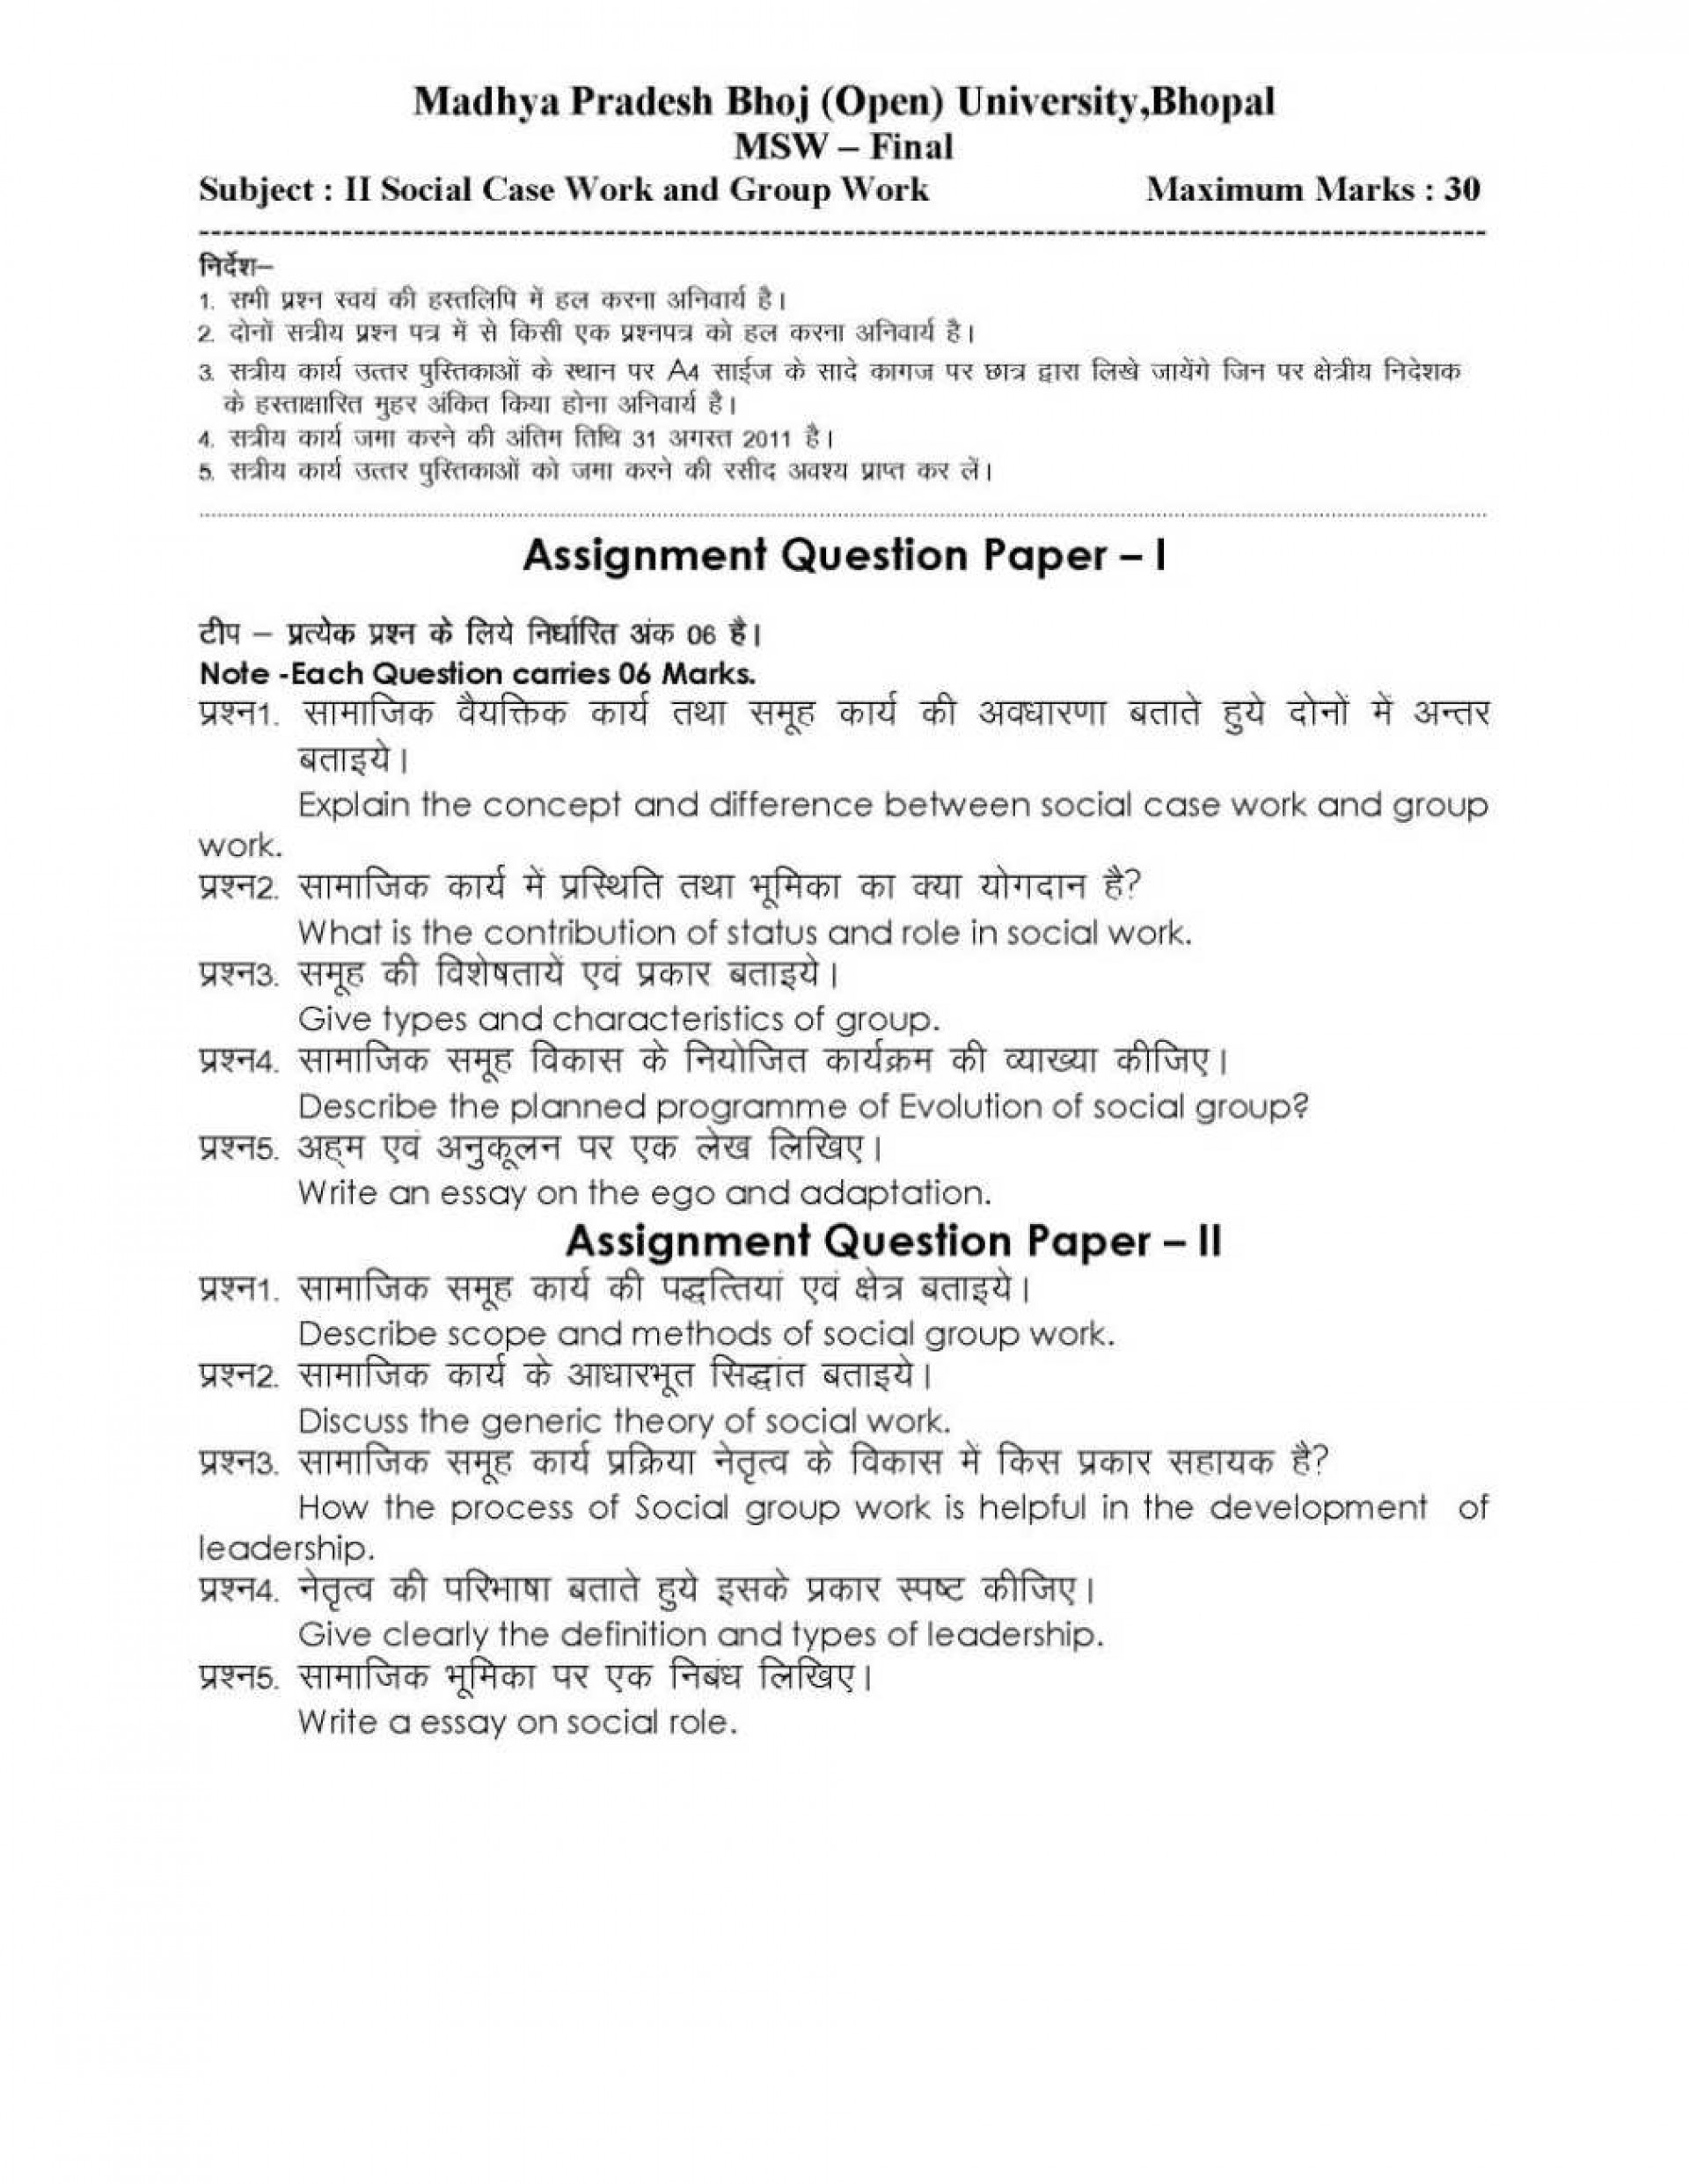 012 Bhoj University Bhopal Msw Definition Essays Surprising Essay Examples Friendship Define Writing Pdf 1920